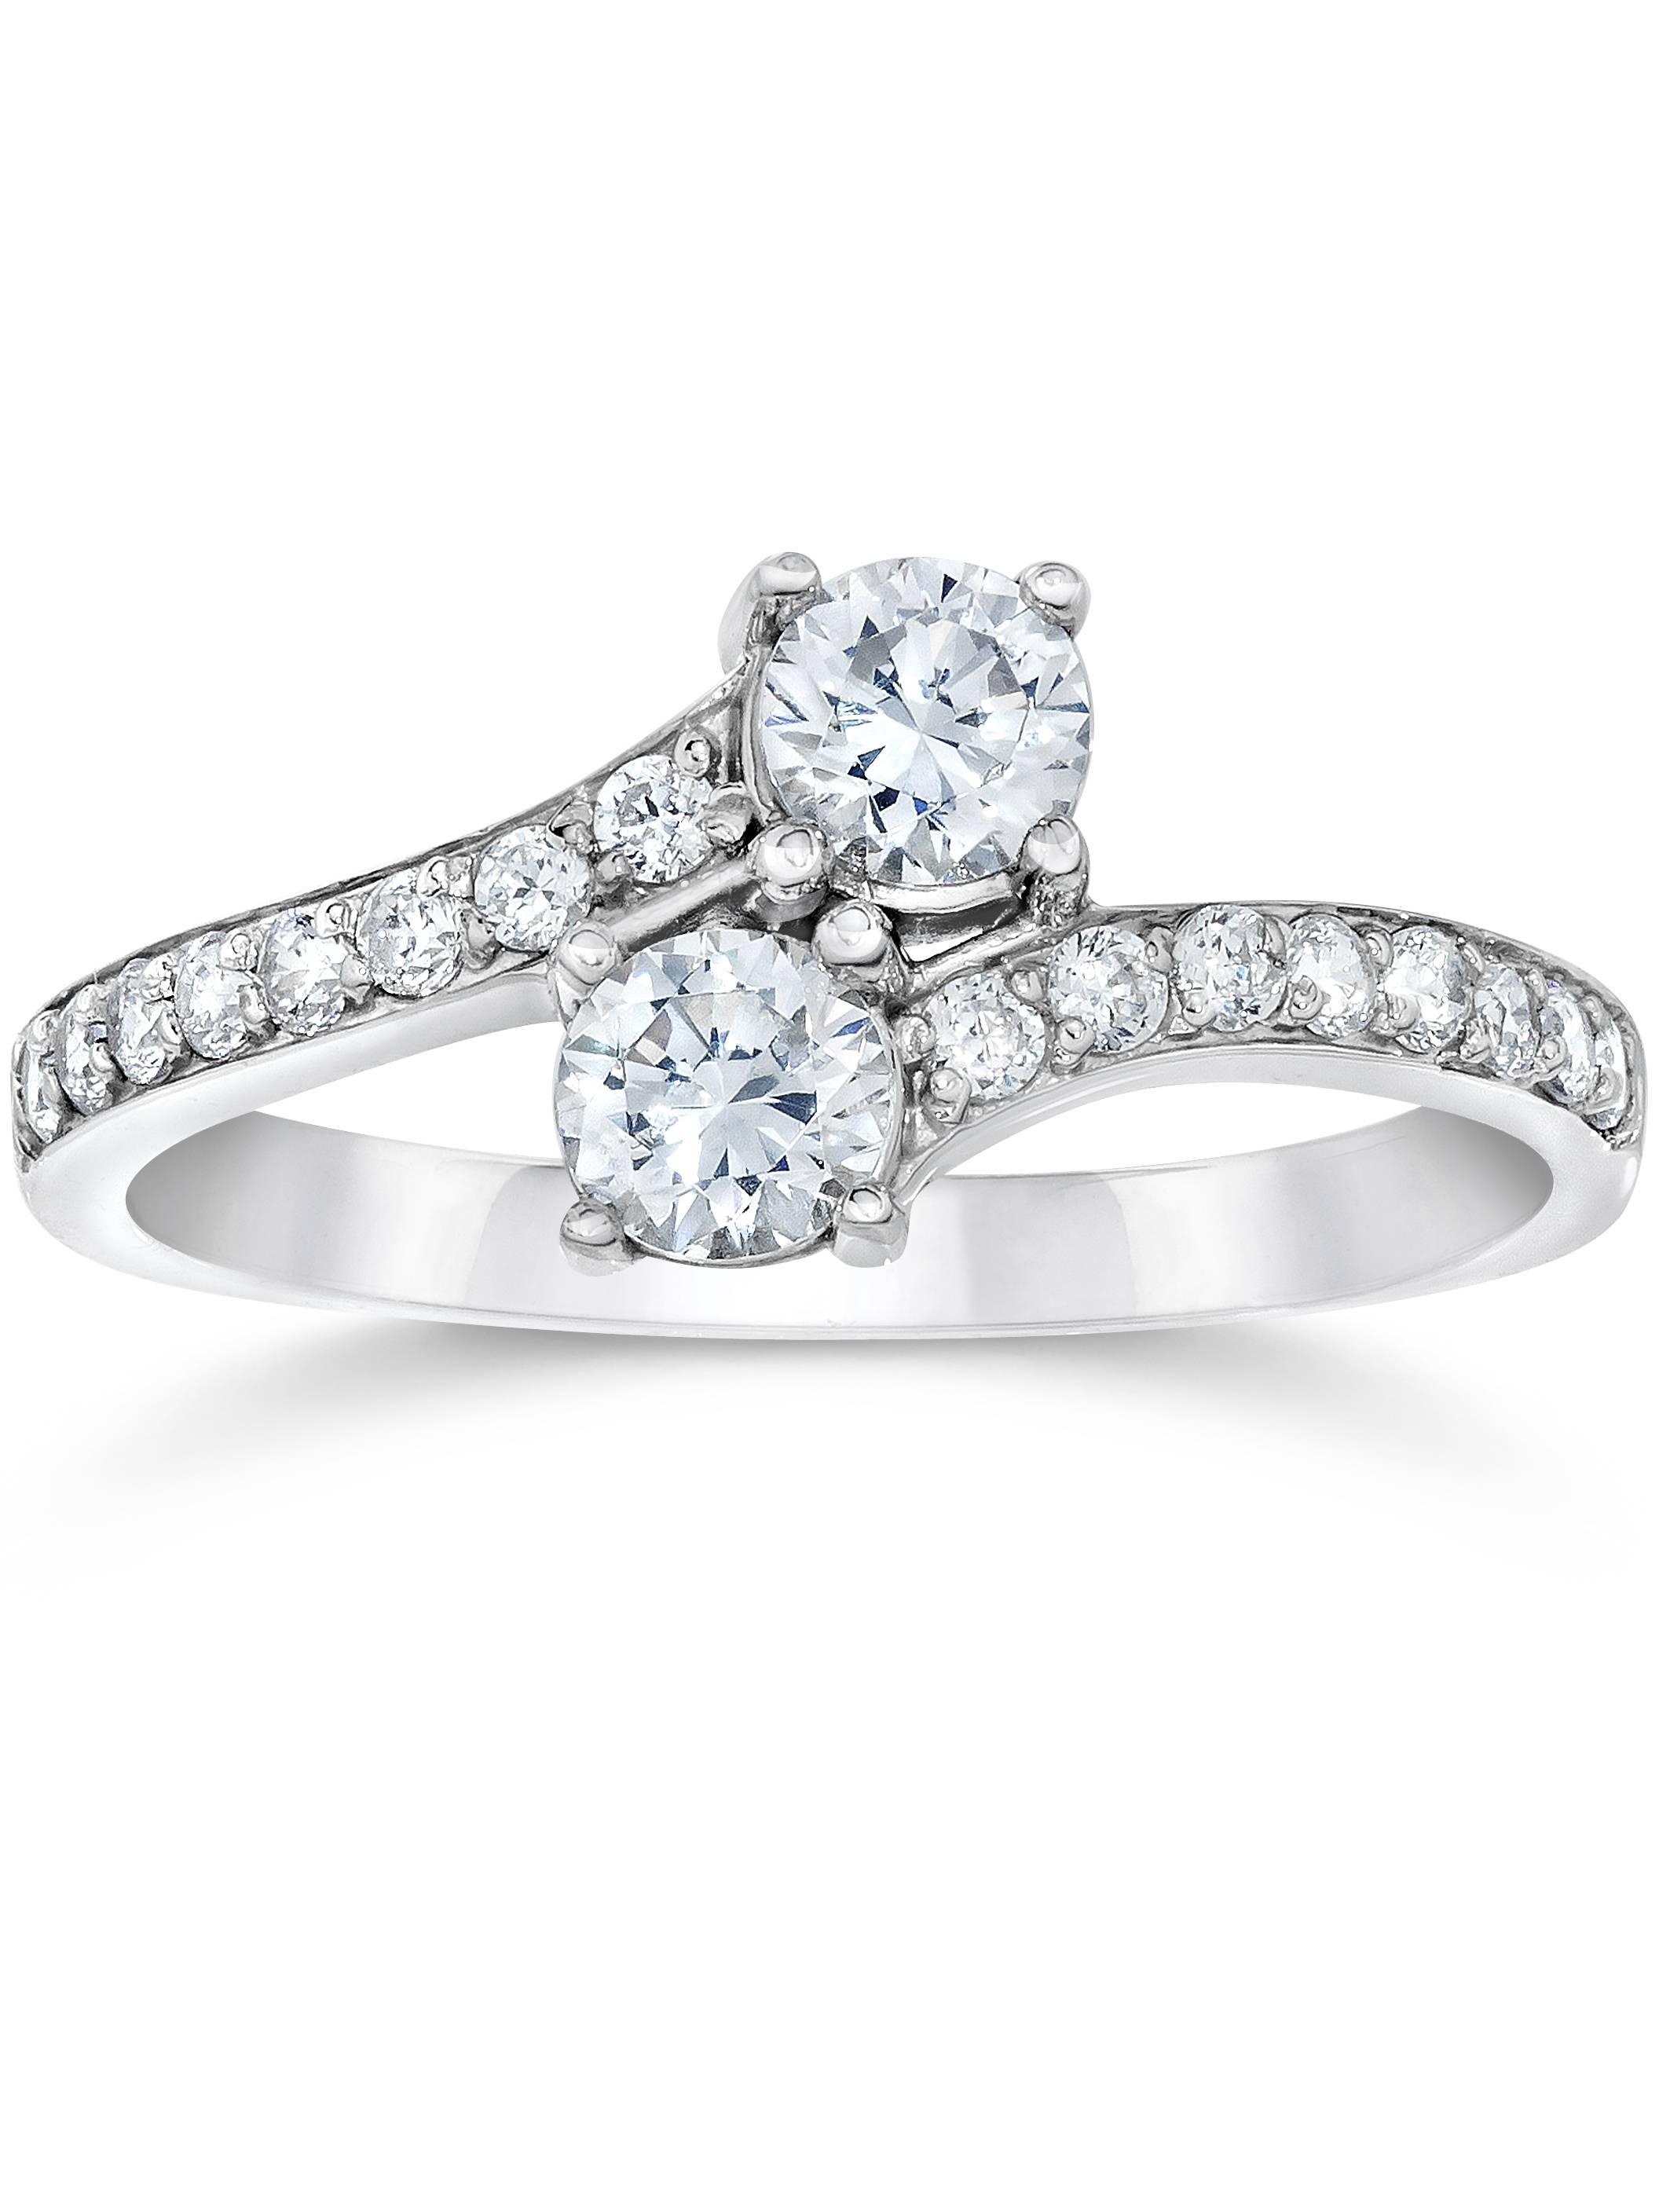 image engagement dsc rings hunter diamond chisholm stone and description from trilogy diamonds